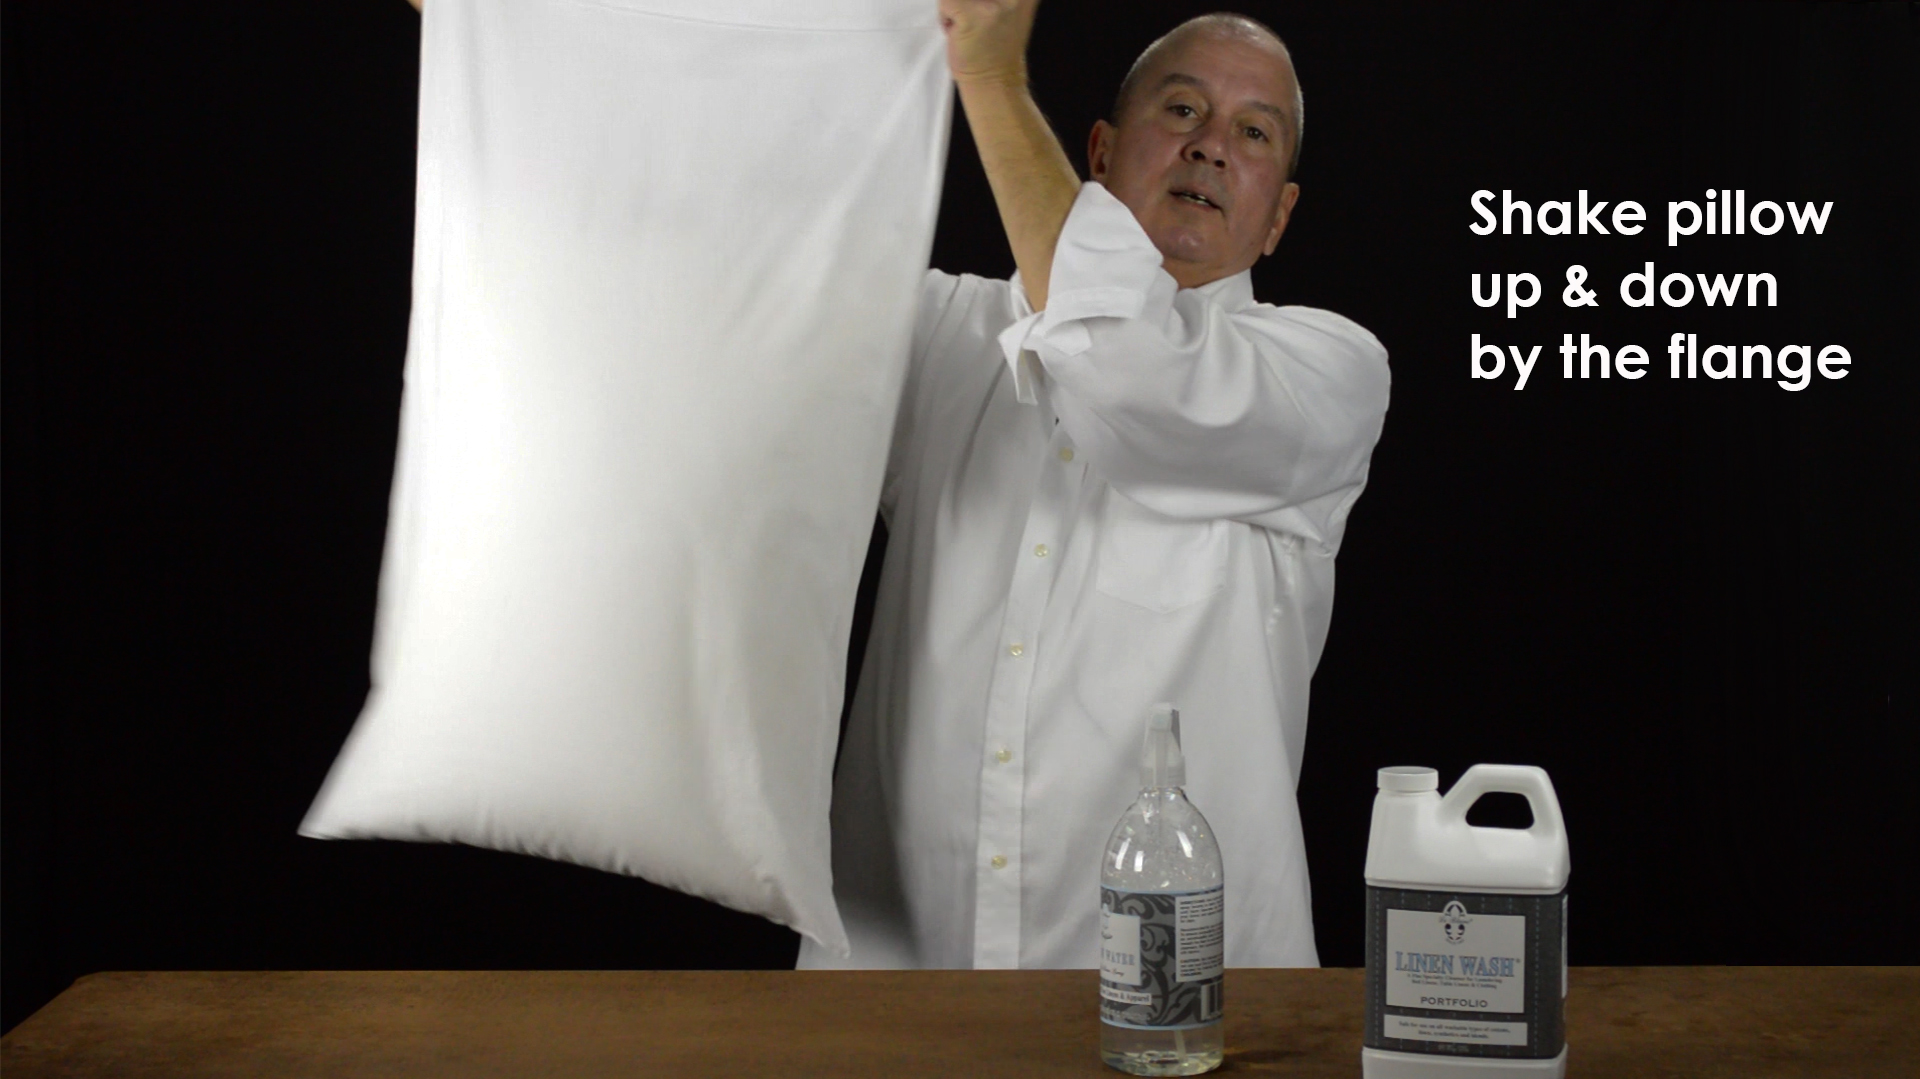 Shake pillow up and down to apply pressure on the damp fabric